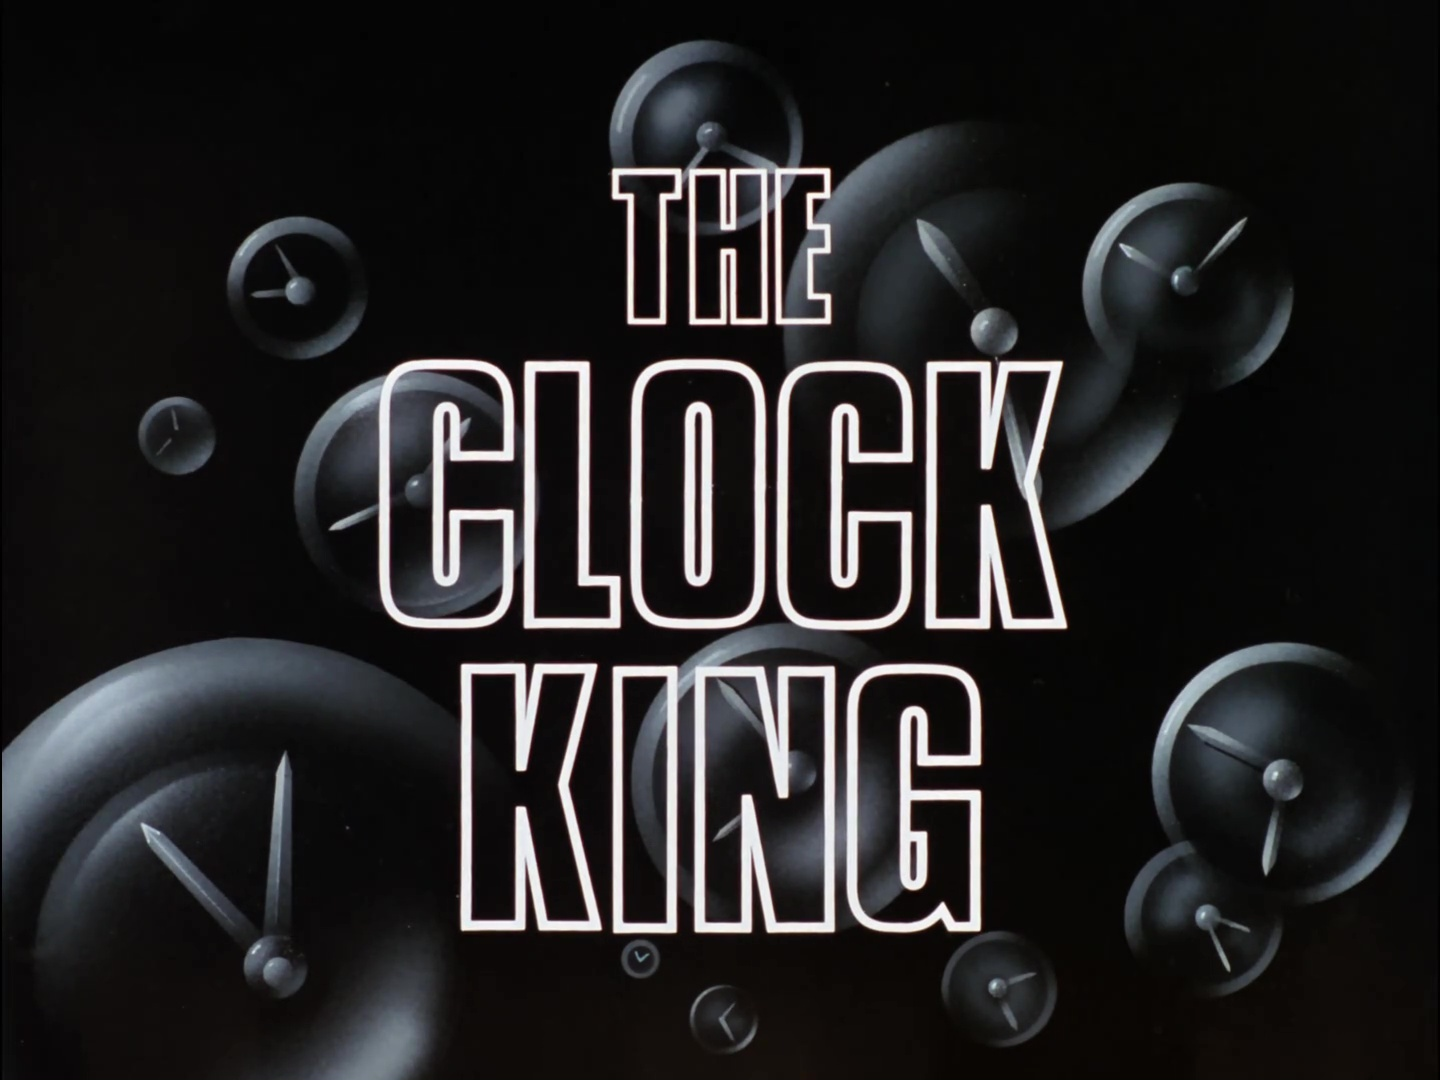 File:The Clock King Title Card.jpg